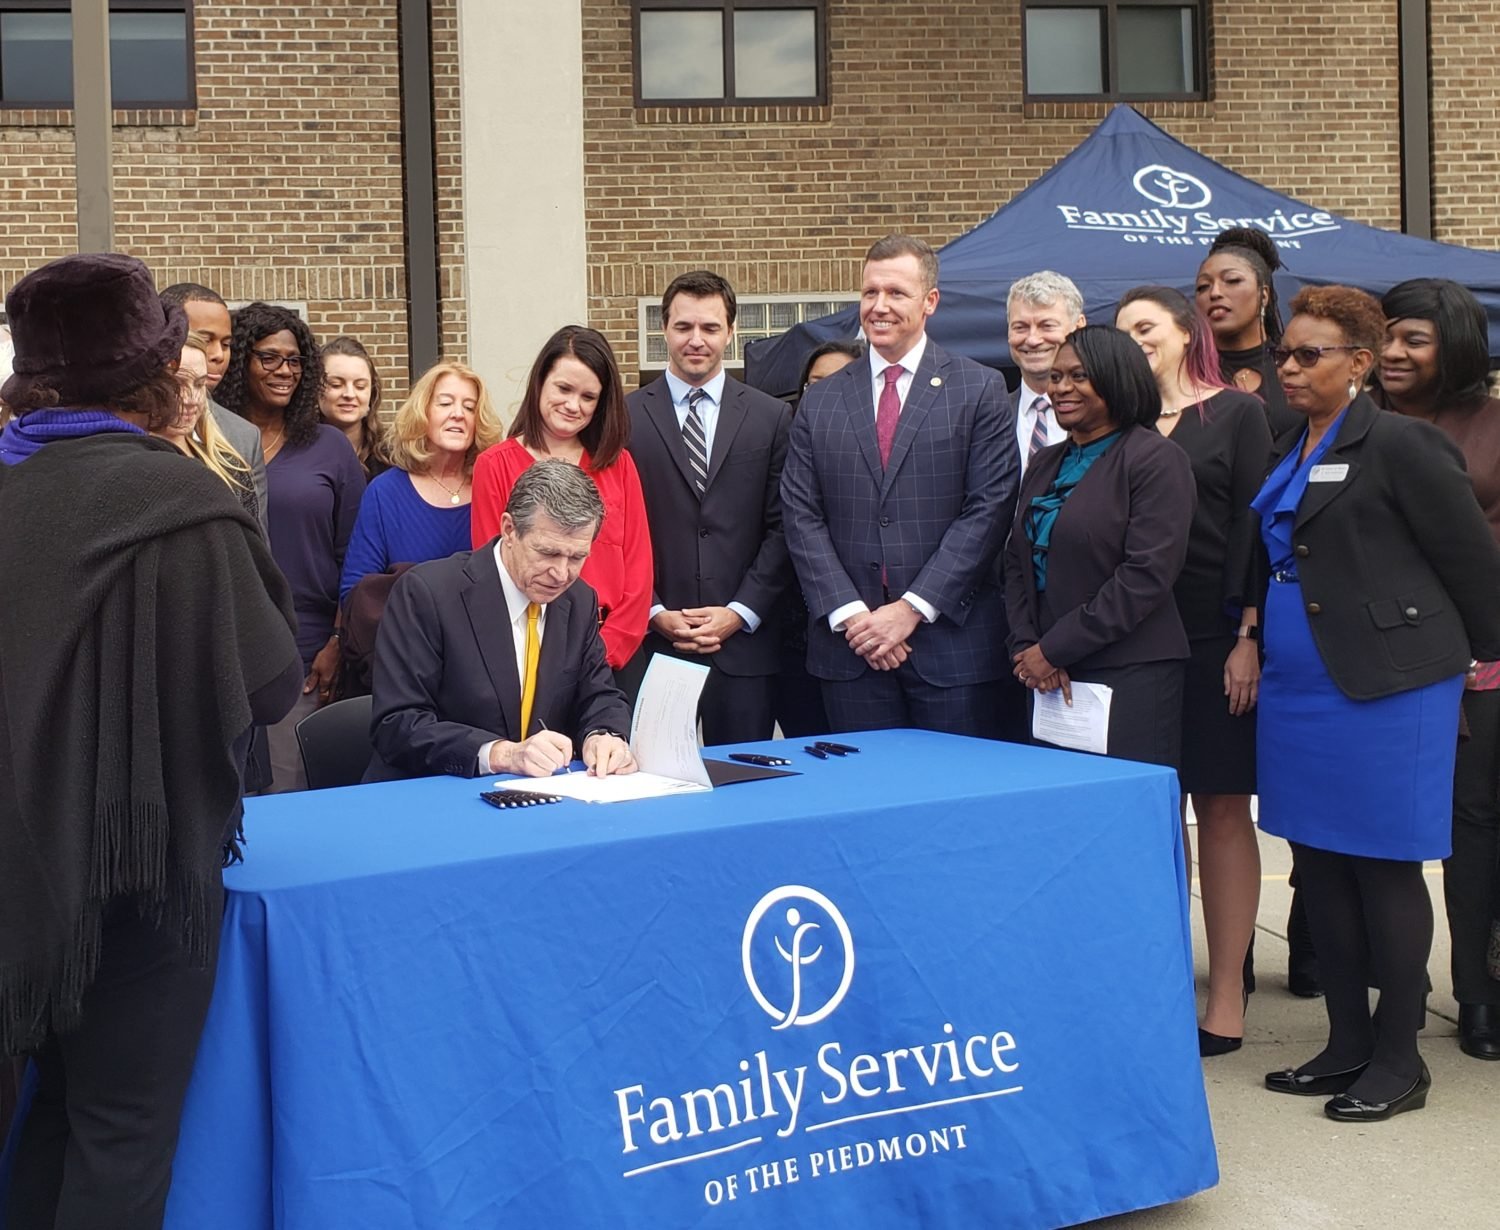 Gov signs sexual assault reforms into law